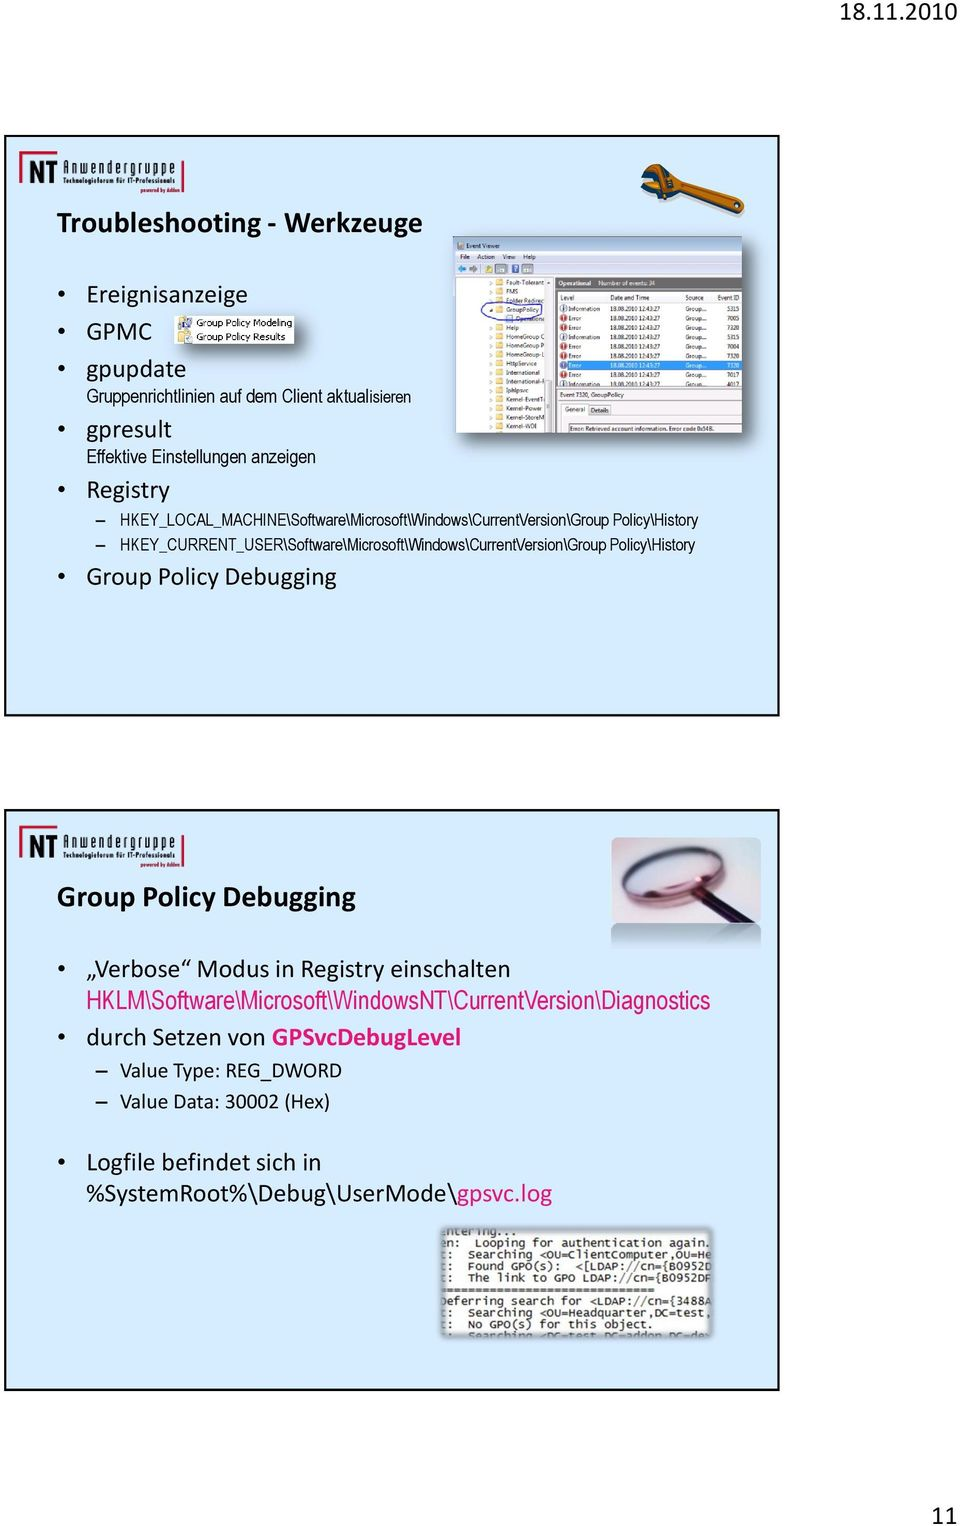 HKEY_CURRENT_USER\Software\Microsoft\Windows\CurrentVersion\Group Policy\History Group Policy Debugging Group Policy Debugging Verbose Modus in Registry